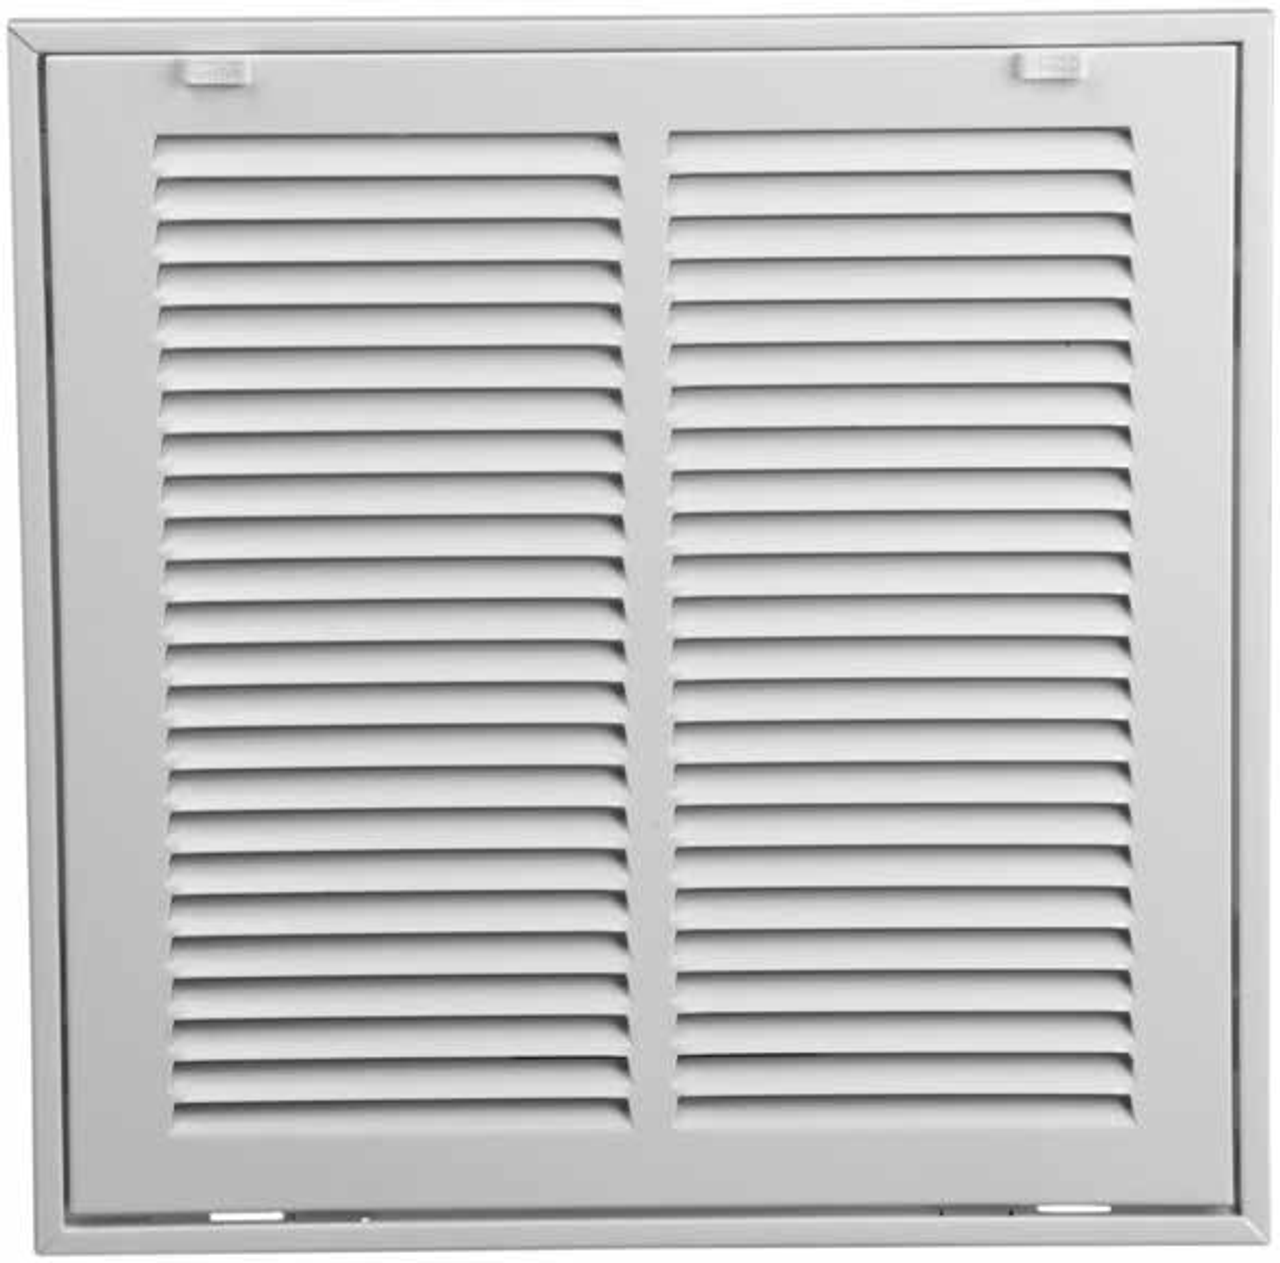 10x10 Return Air Filter Grille Stamped Steel Face